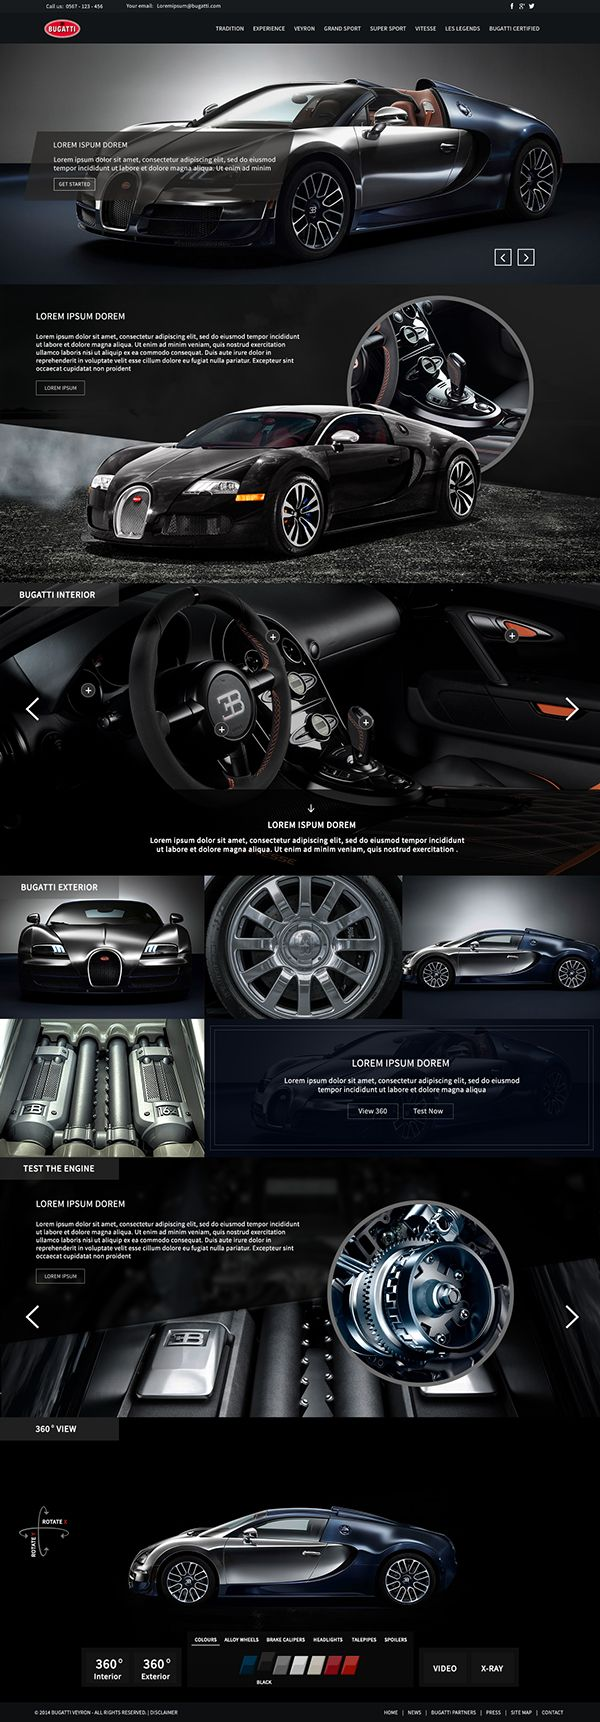 Bugatti Website Design // Hi Friends, look what I just found on #web #design! Make sure to follow us @moirestudiosjkt to see more pins like this | Moire Studios is a thriving website and graphic design studio based in Jakarta, Indonesia.